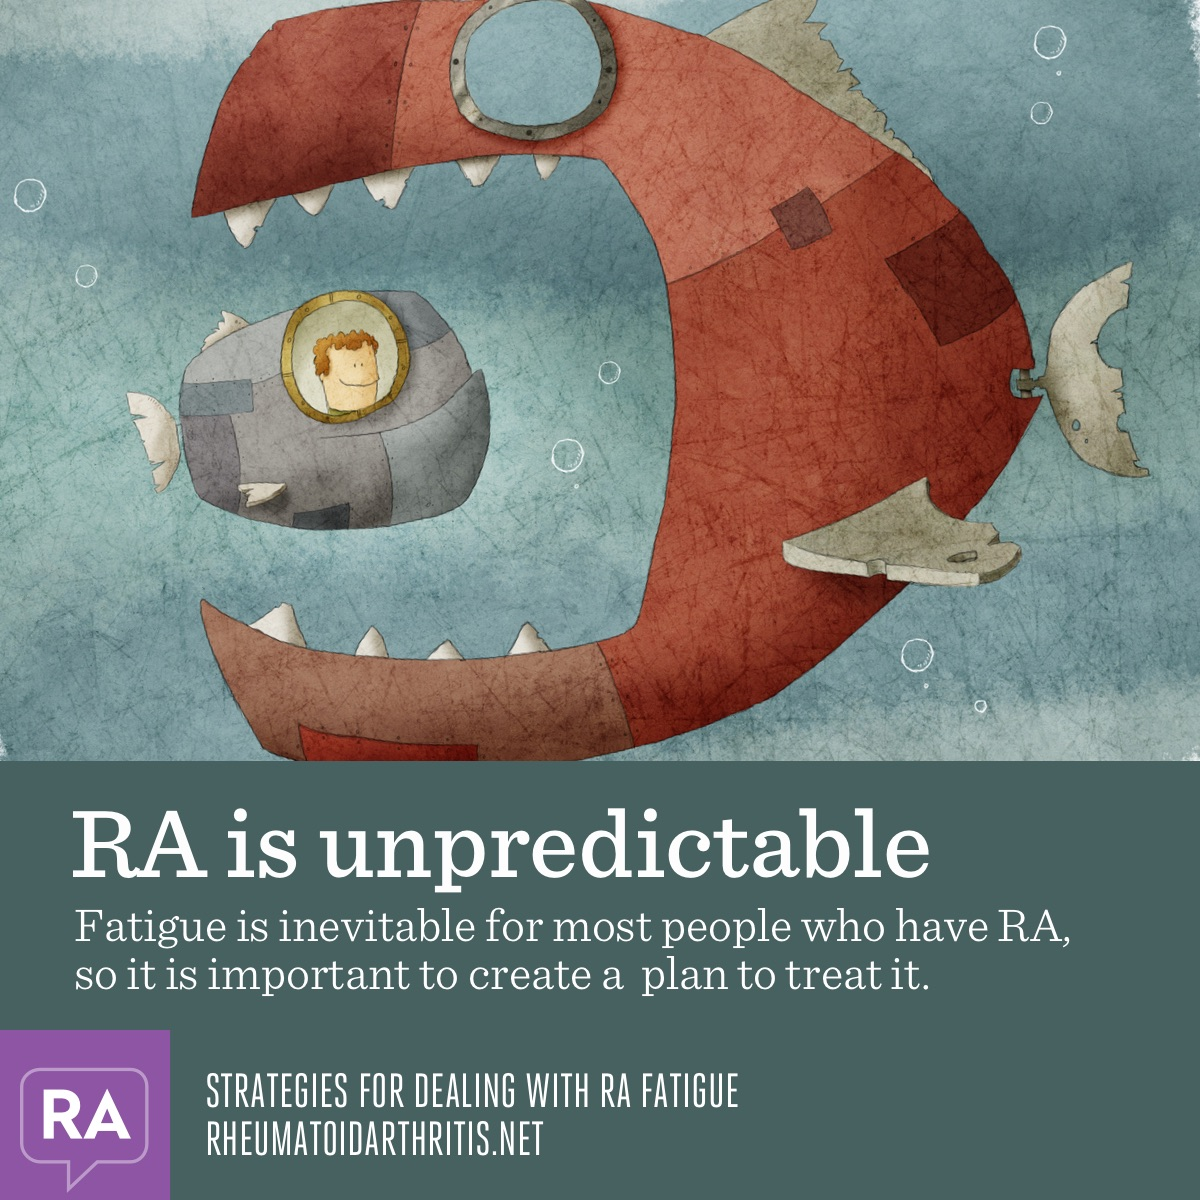 Strategies for dealing with RA fatigue